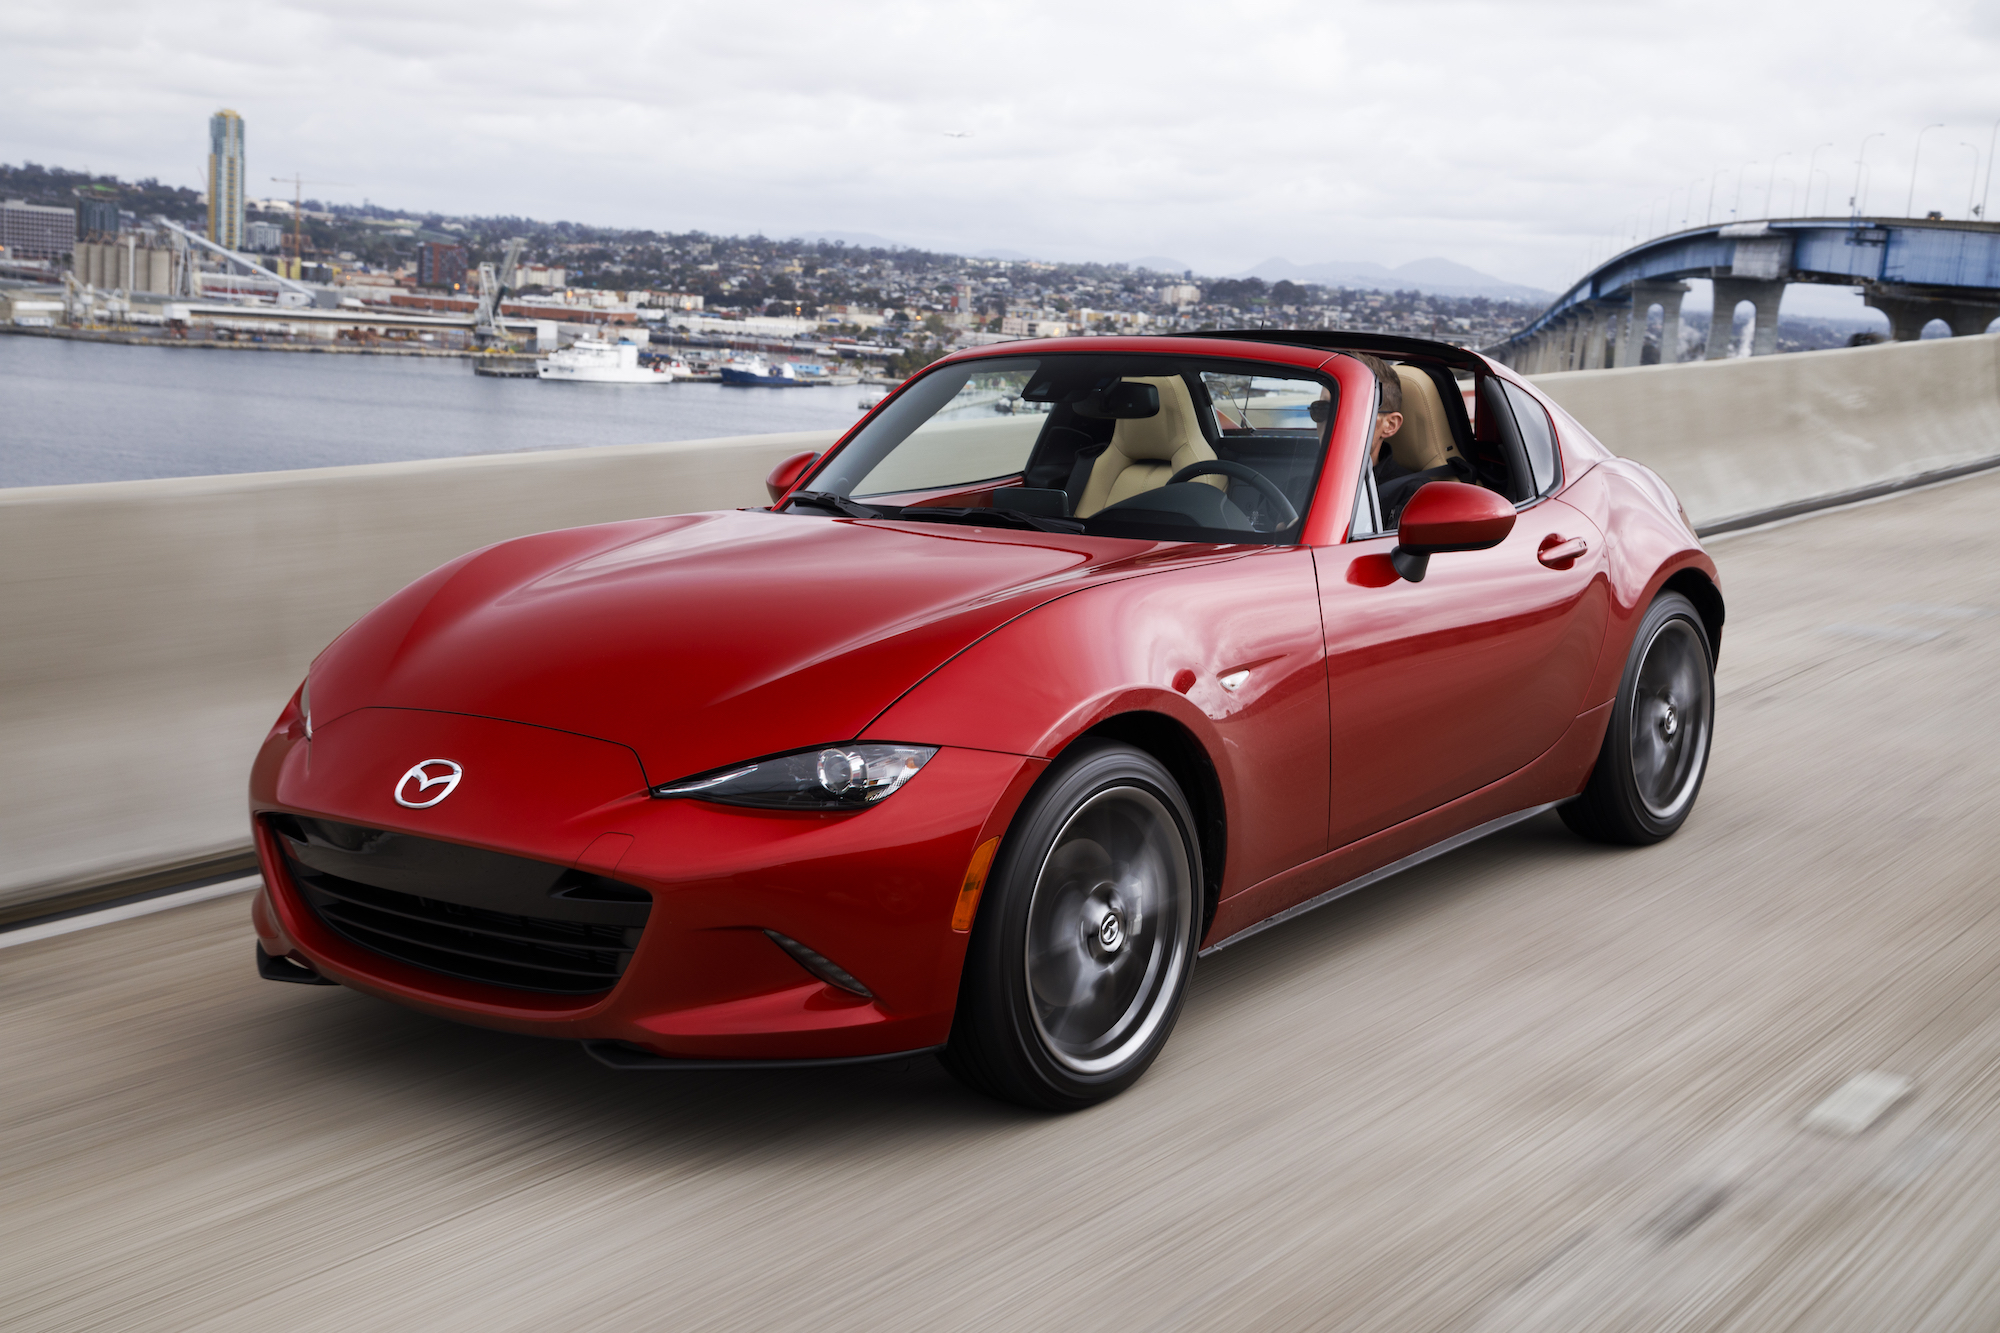 the 2017 mazda mx-5 miata rf—fancy new looks, same great driving